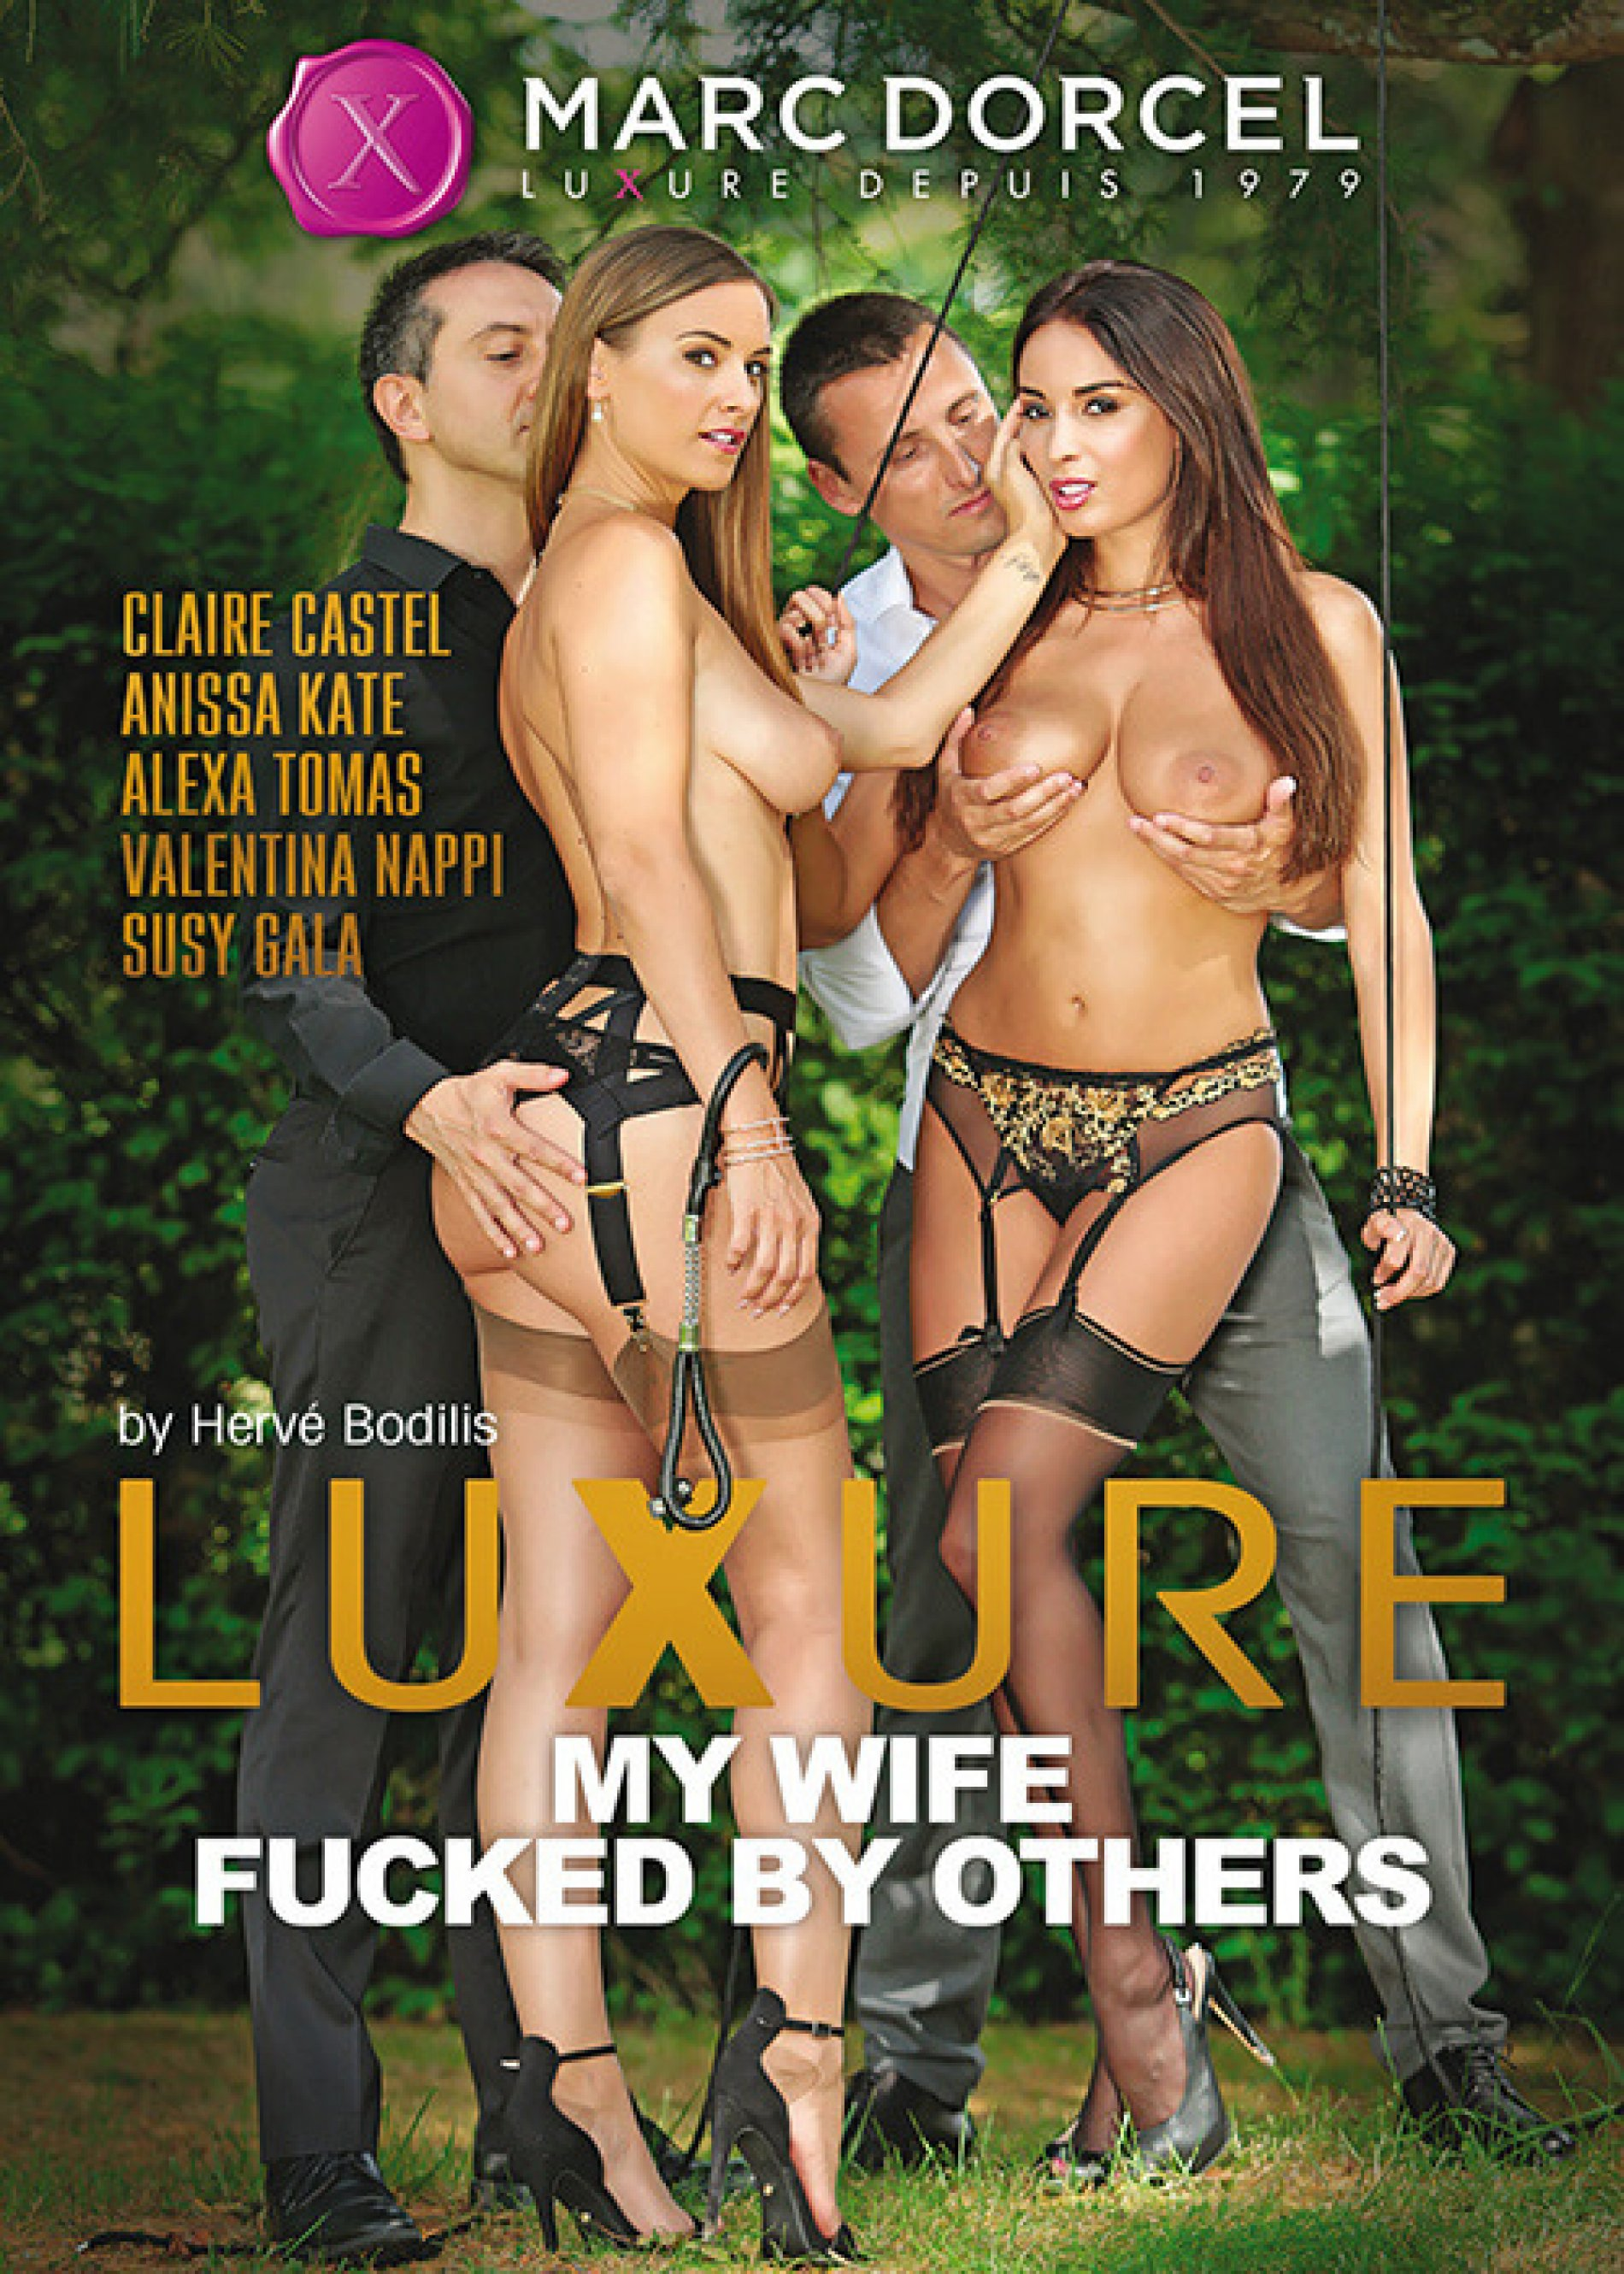 Luxure – my wife fucked by others